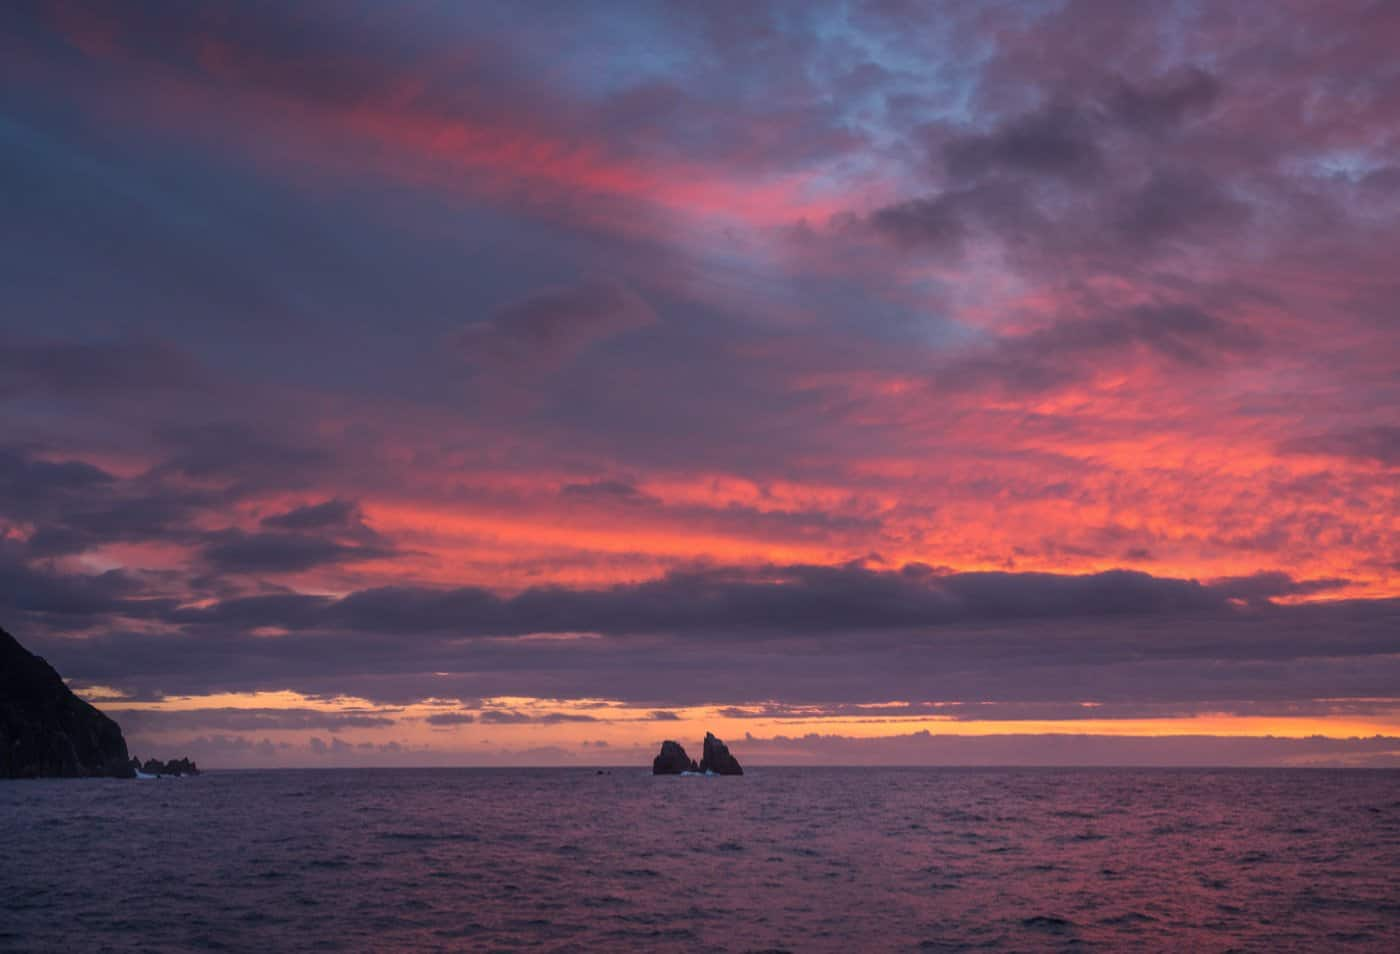 Our day of exploring the Doubtful Sound on our overnight cruise ended with an epic sunset.